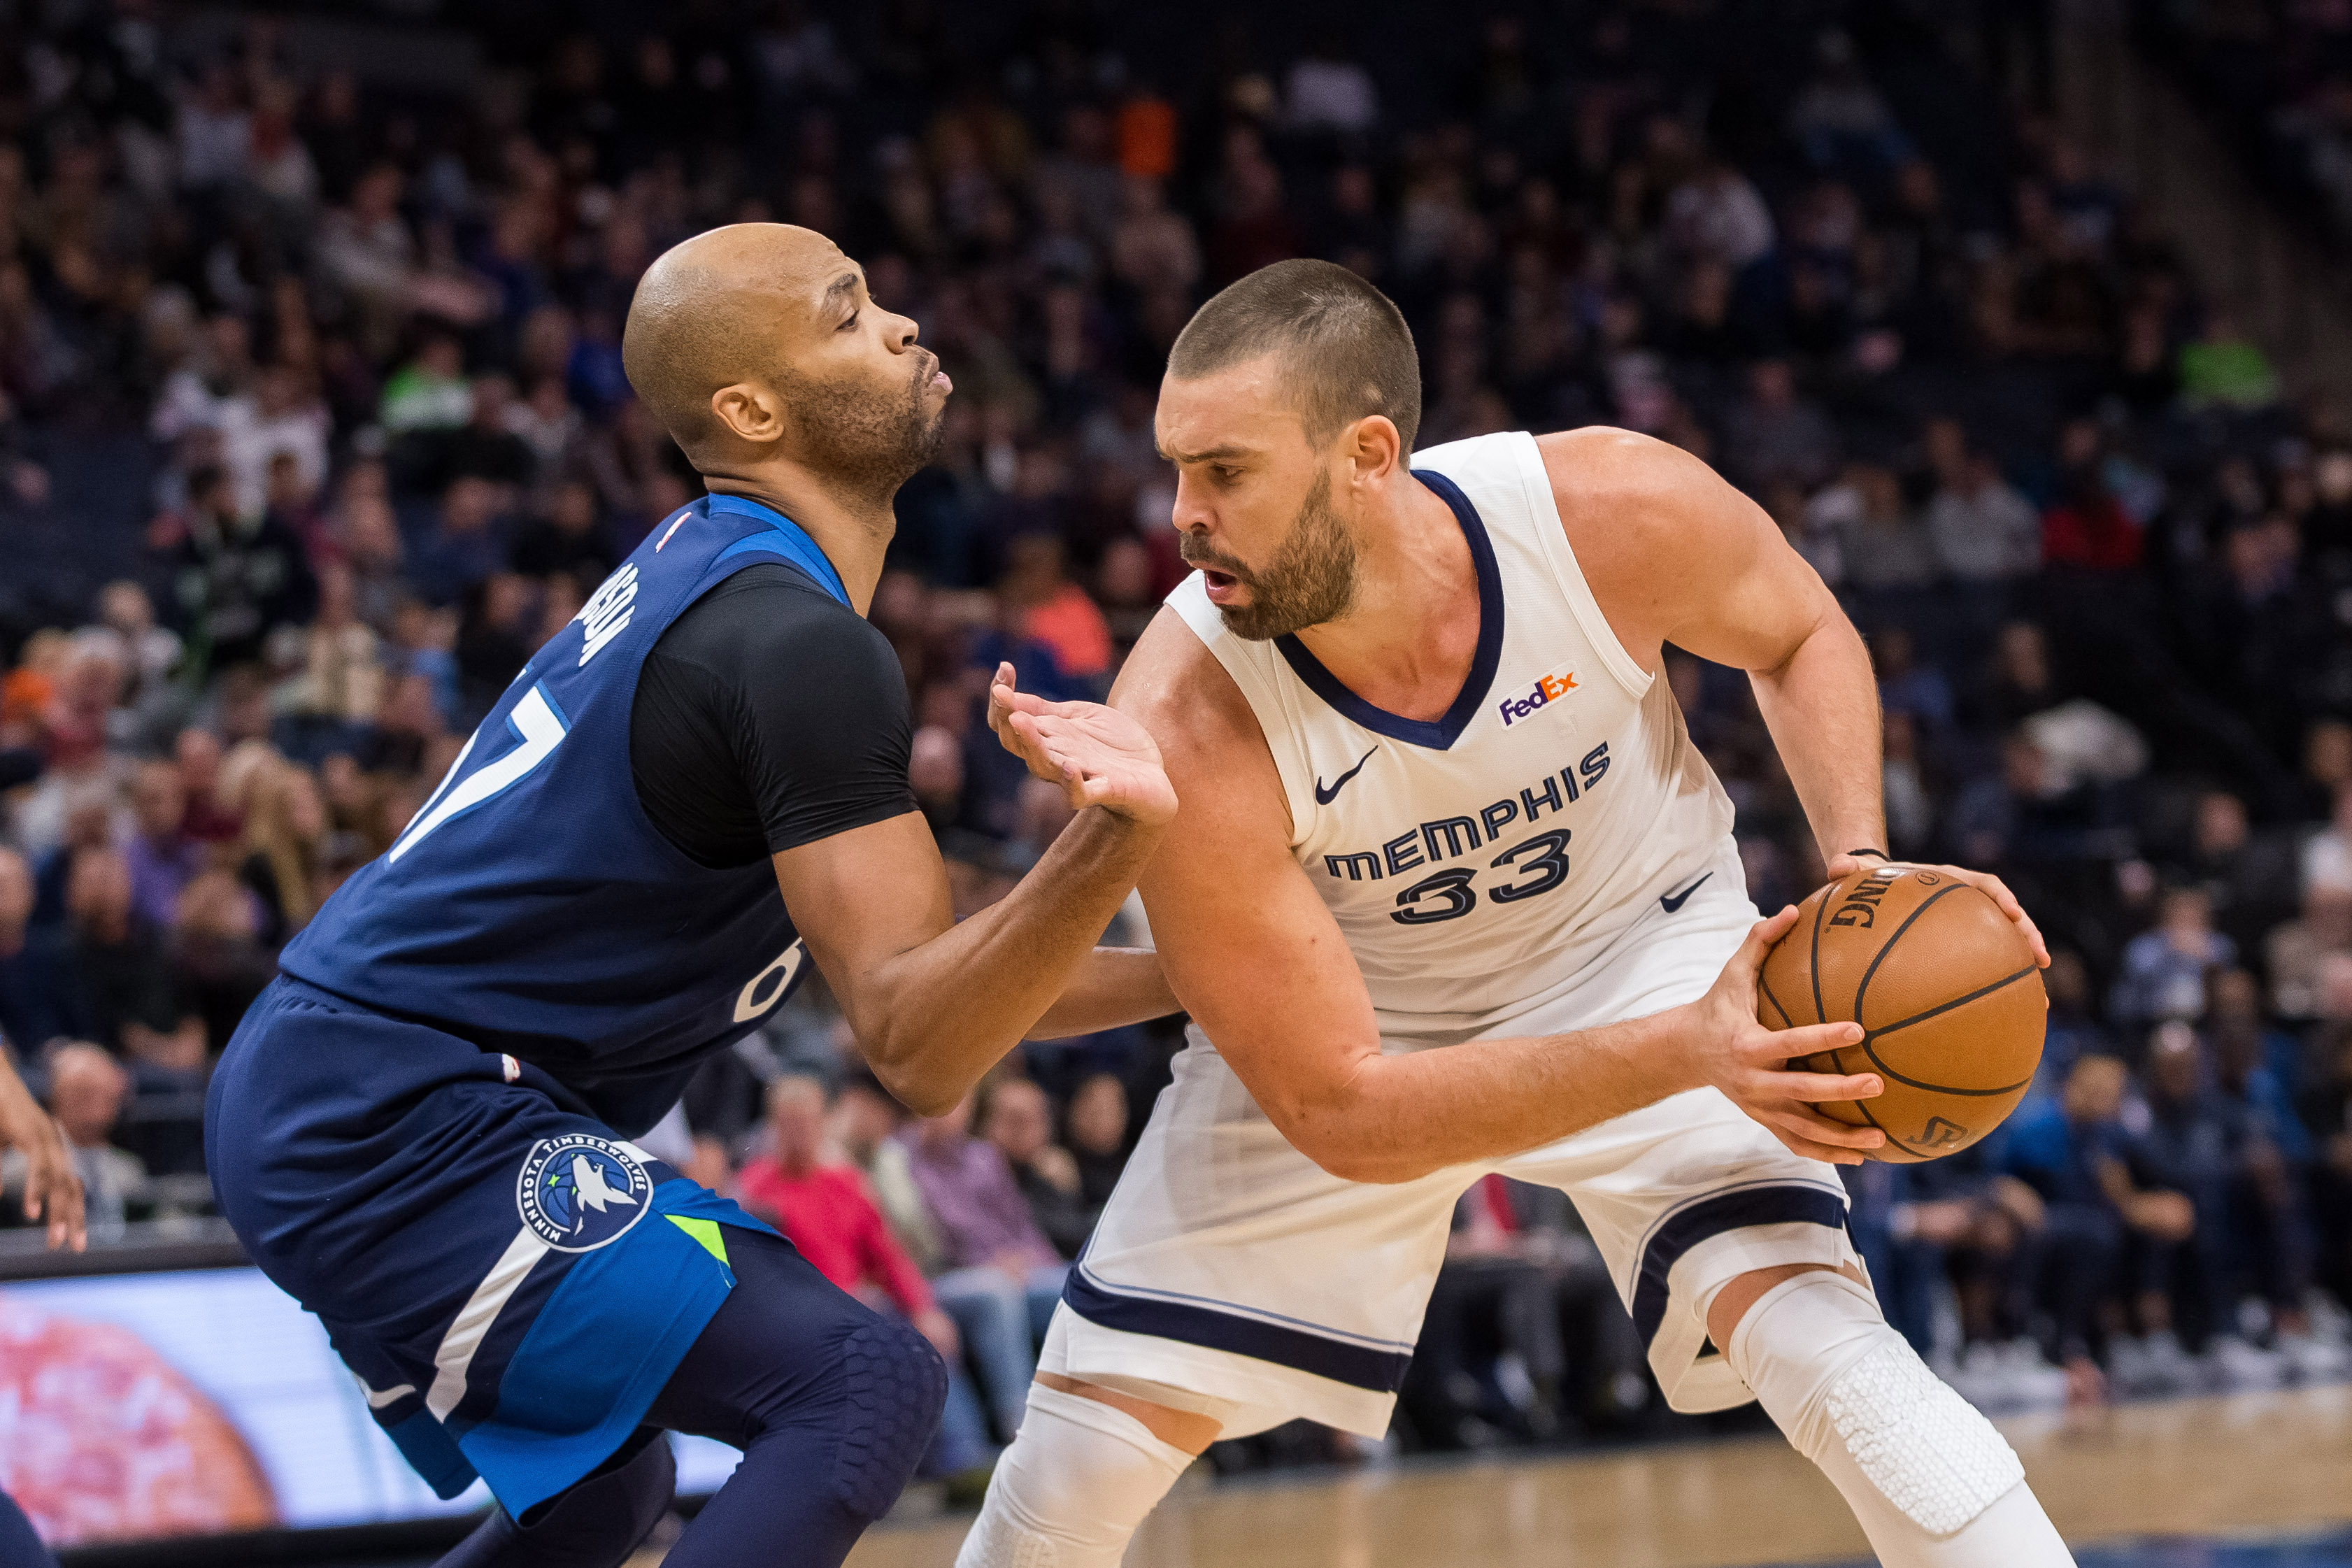 Why the Timberwolves Lost to the Grizzlies